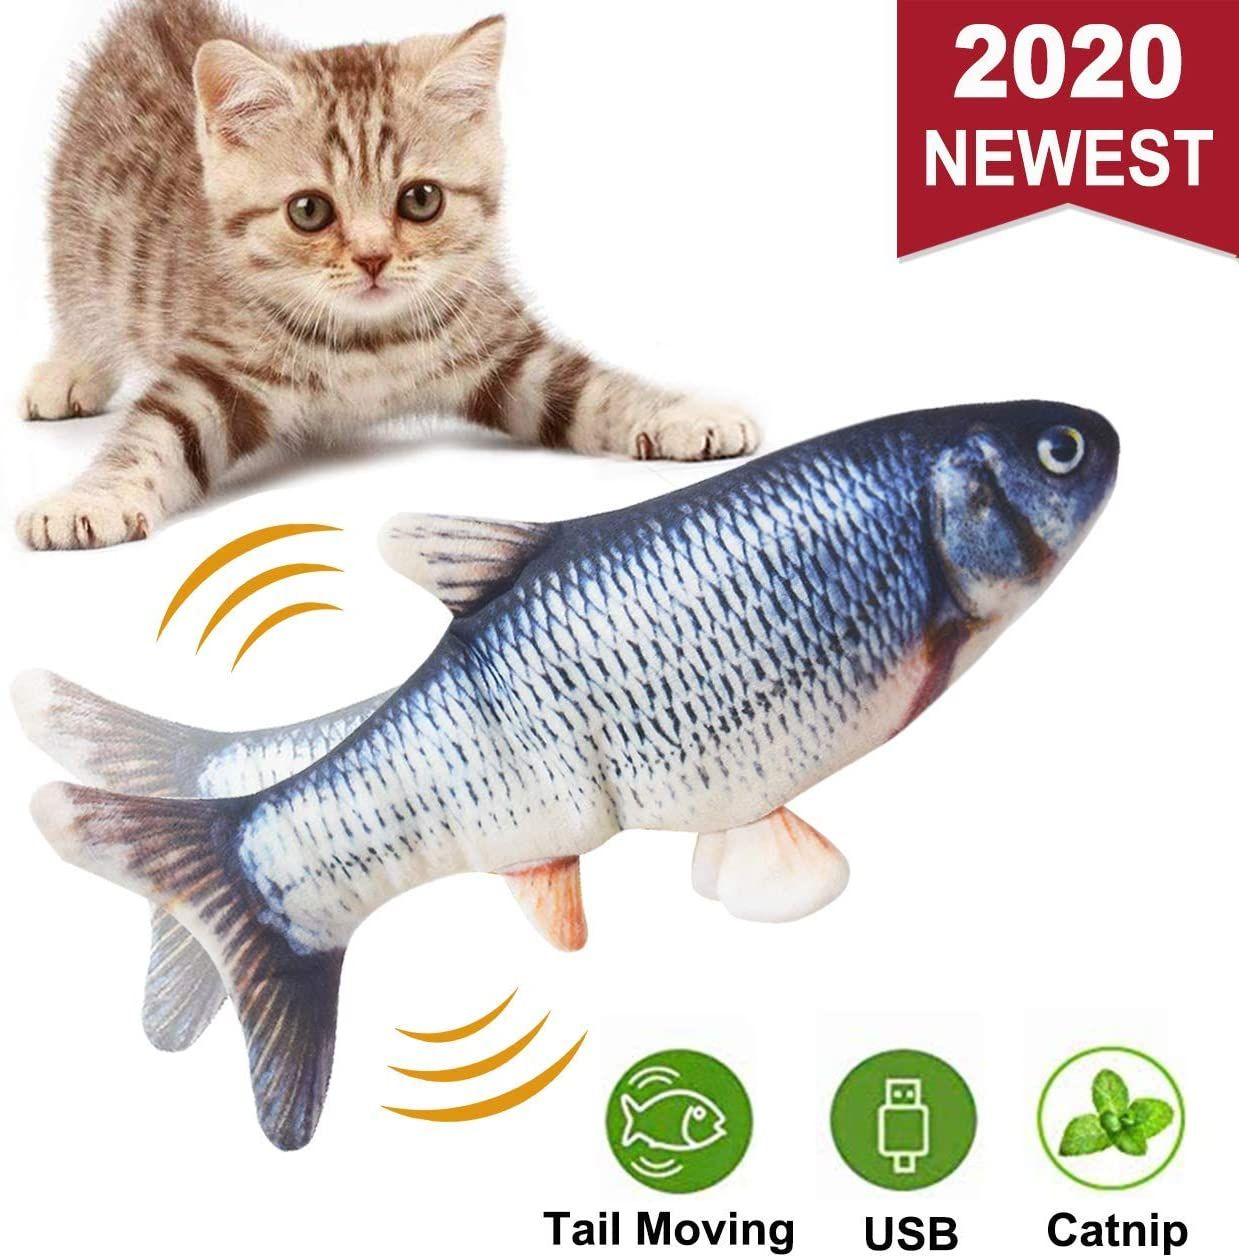 Electric Dancing Catnip Fish Toys for Cats in 2020